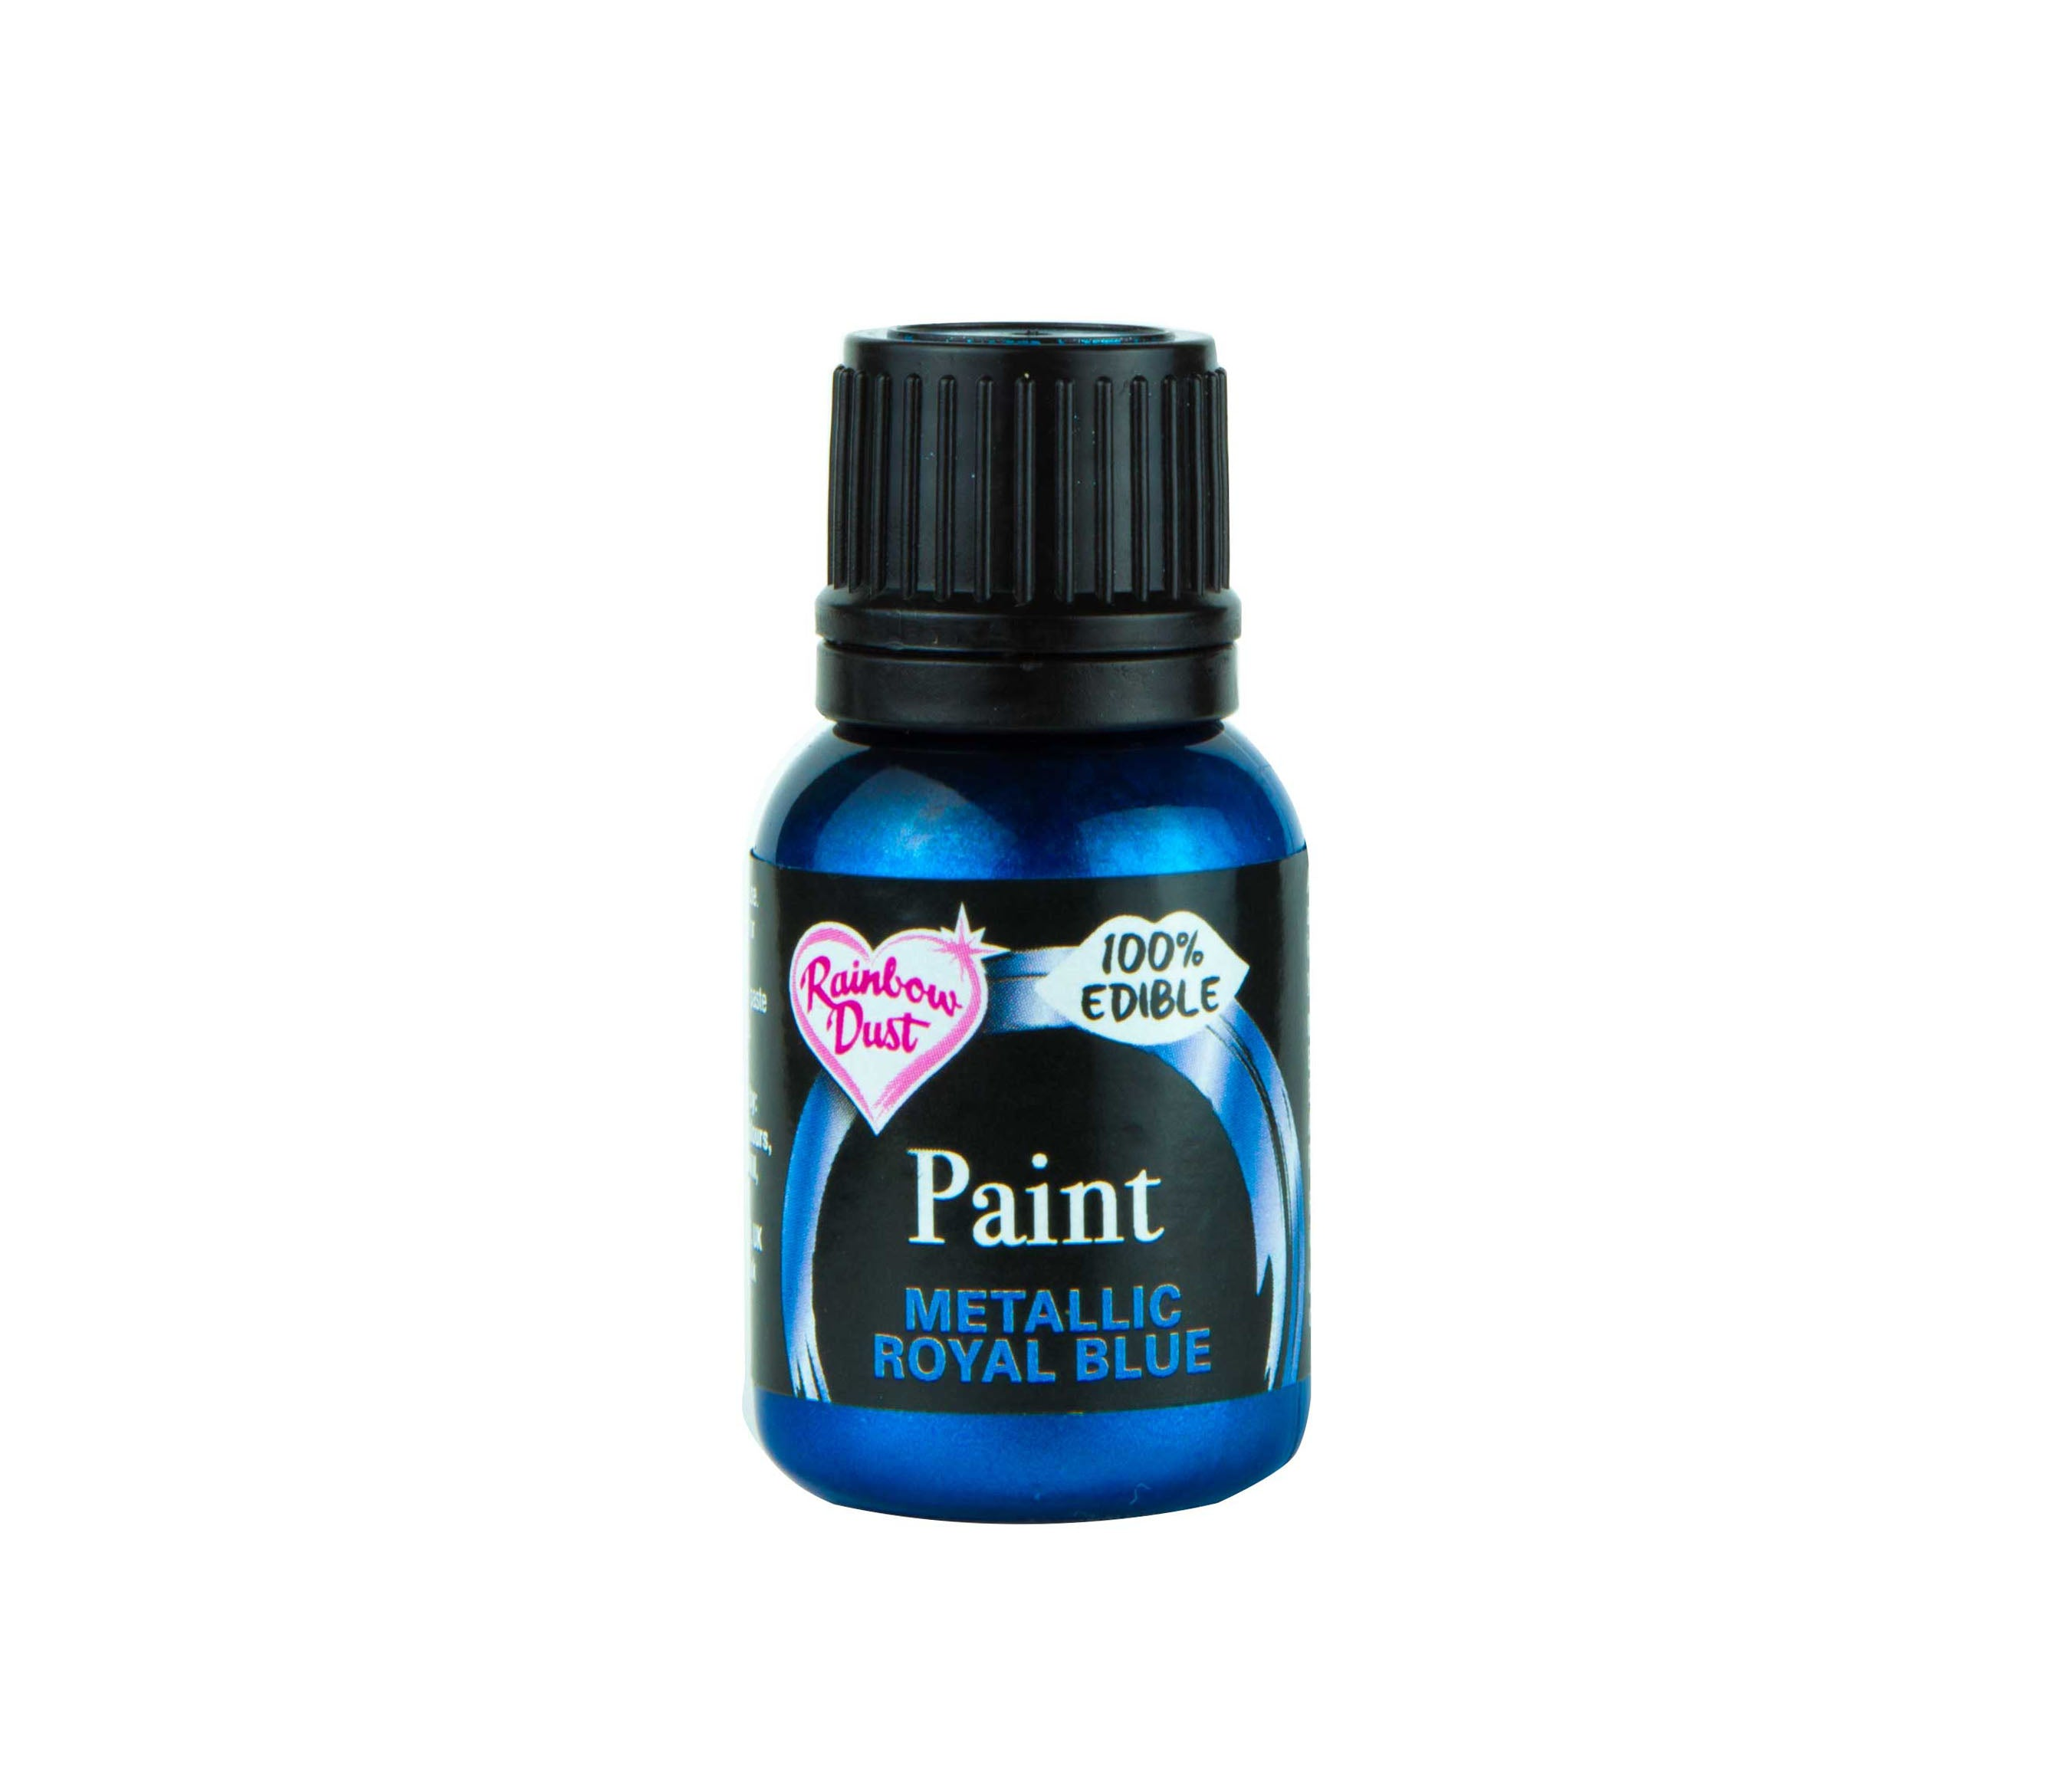 Edible Paints Metallic Royal Blue 25g